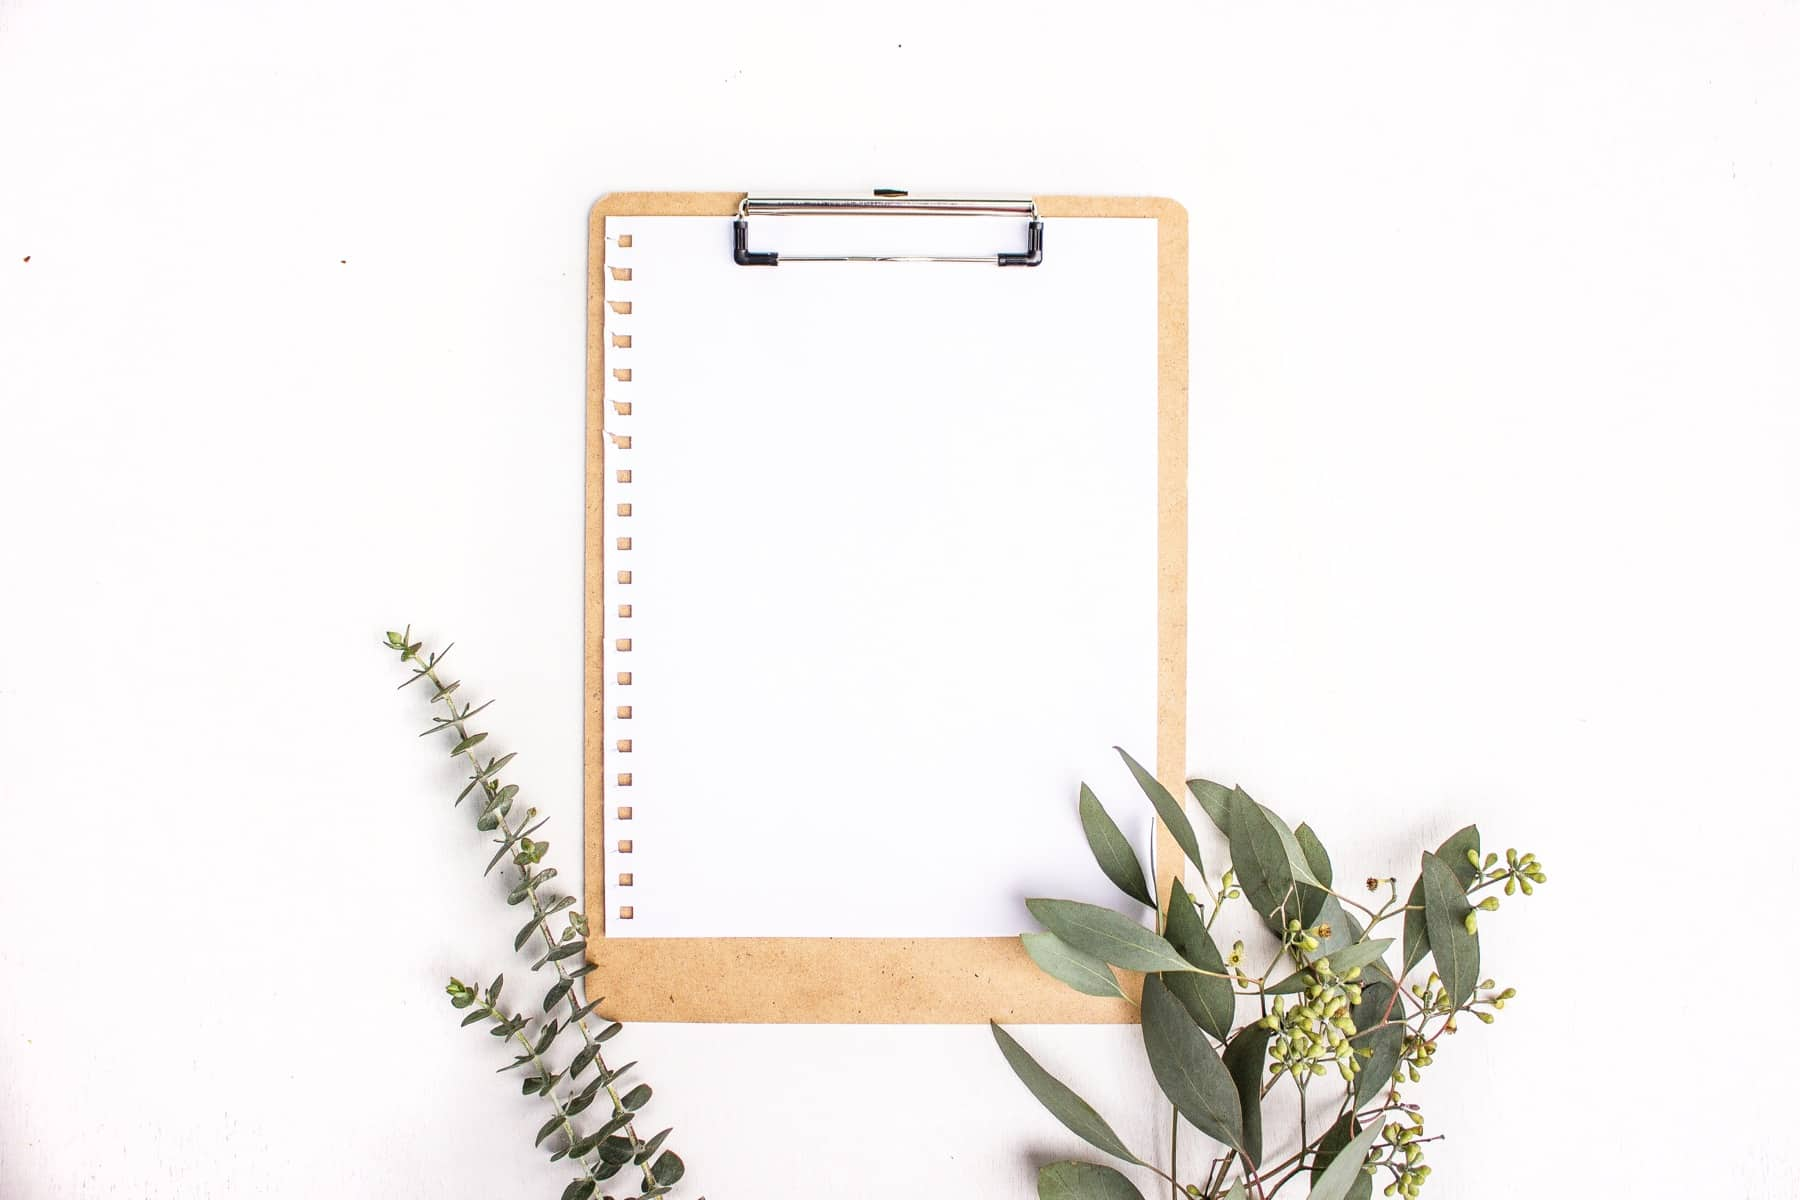 Styling flat lay photographs for blog and home decor · Via www.sweethings.net